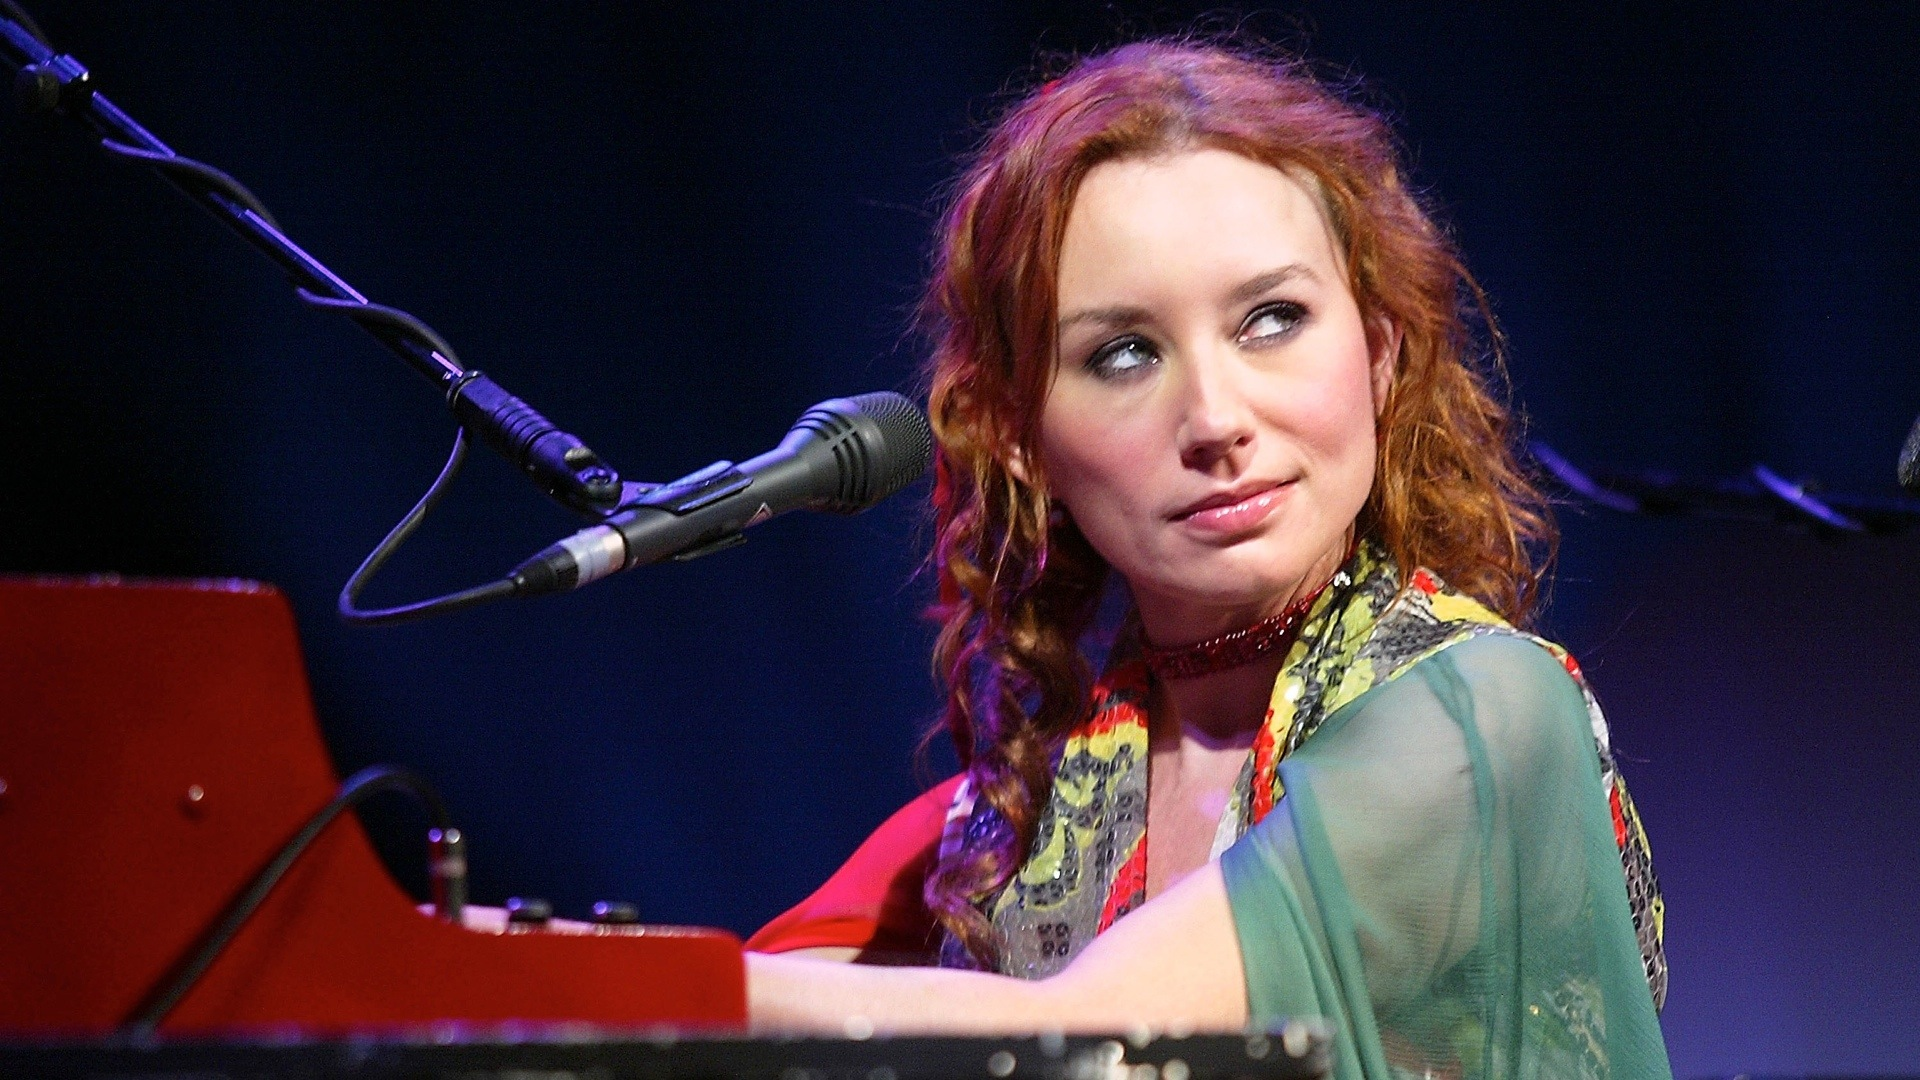 Tips: Tori Amos, 2018s dressy hair style of the beautiful sexy  musician